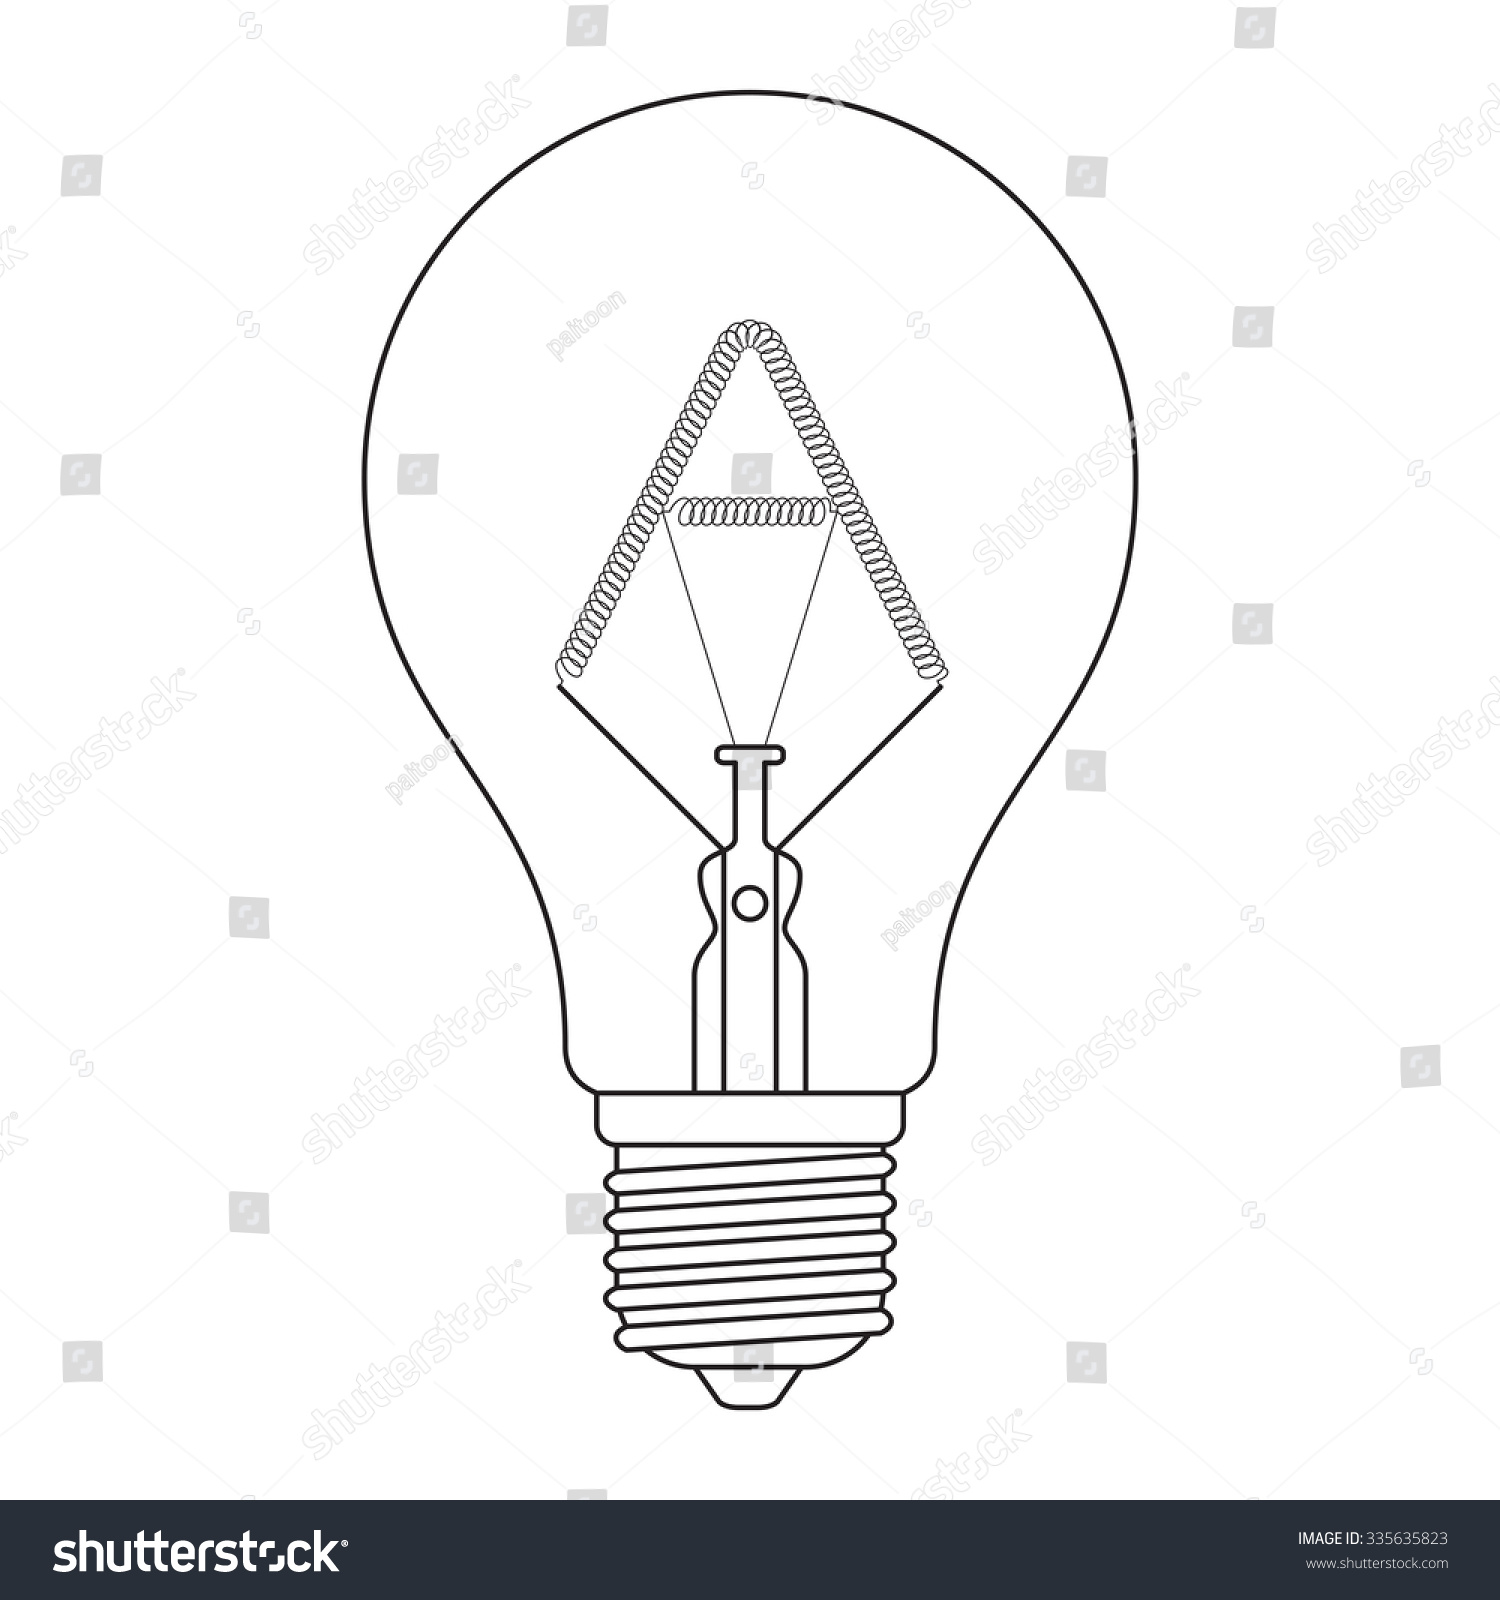 Letter A Alphabet Incandescent Light Bulb Stock Vector Royalty Free Diagram Of The How Flourescent In Set Outline Style Black And White